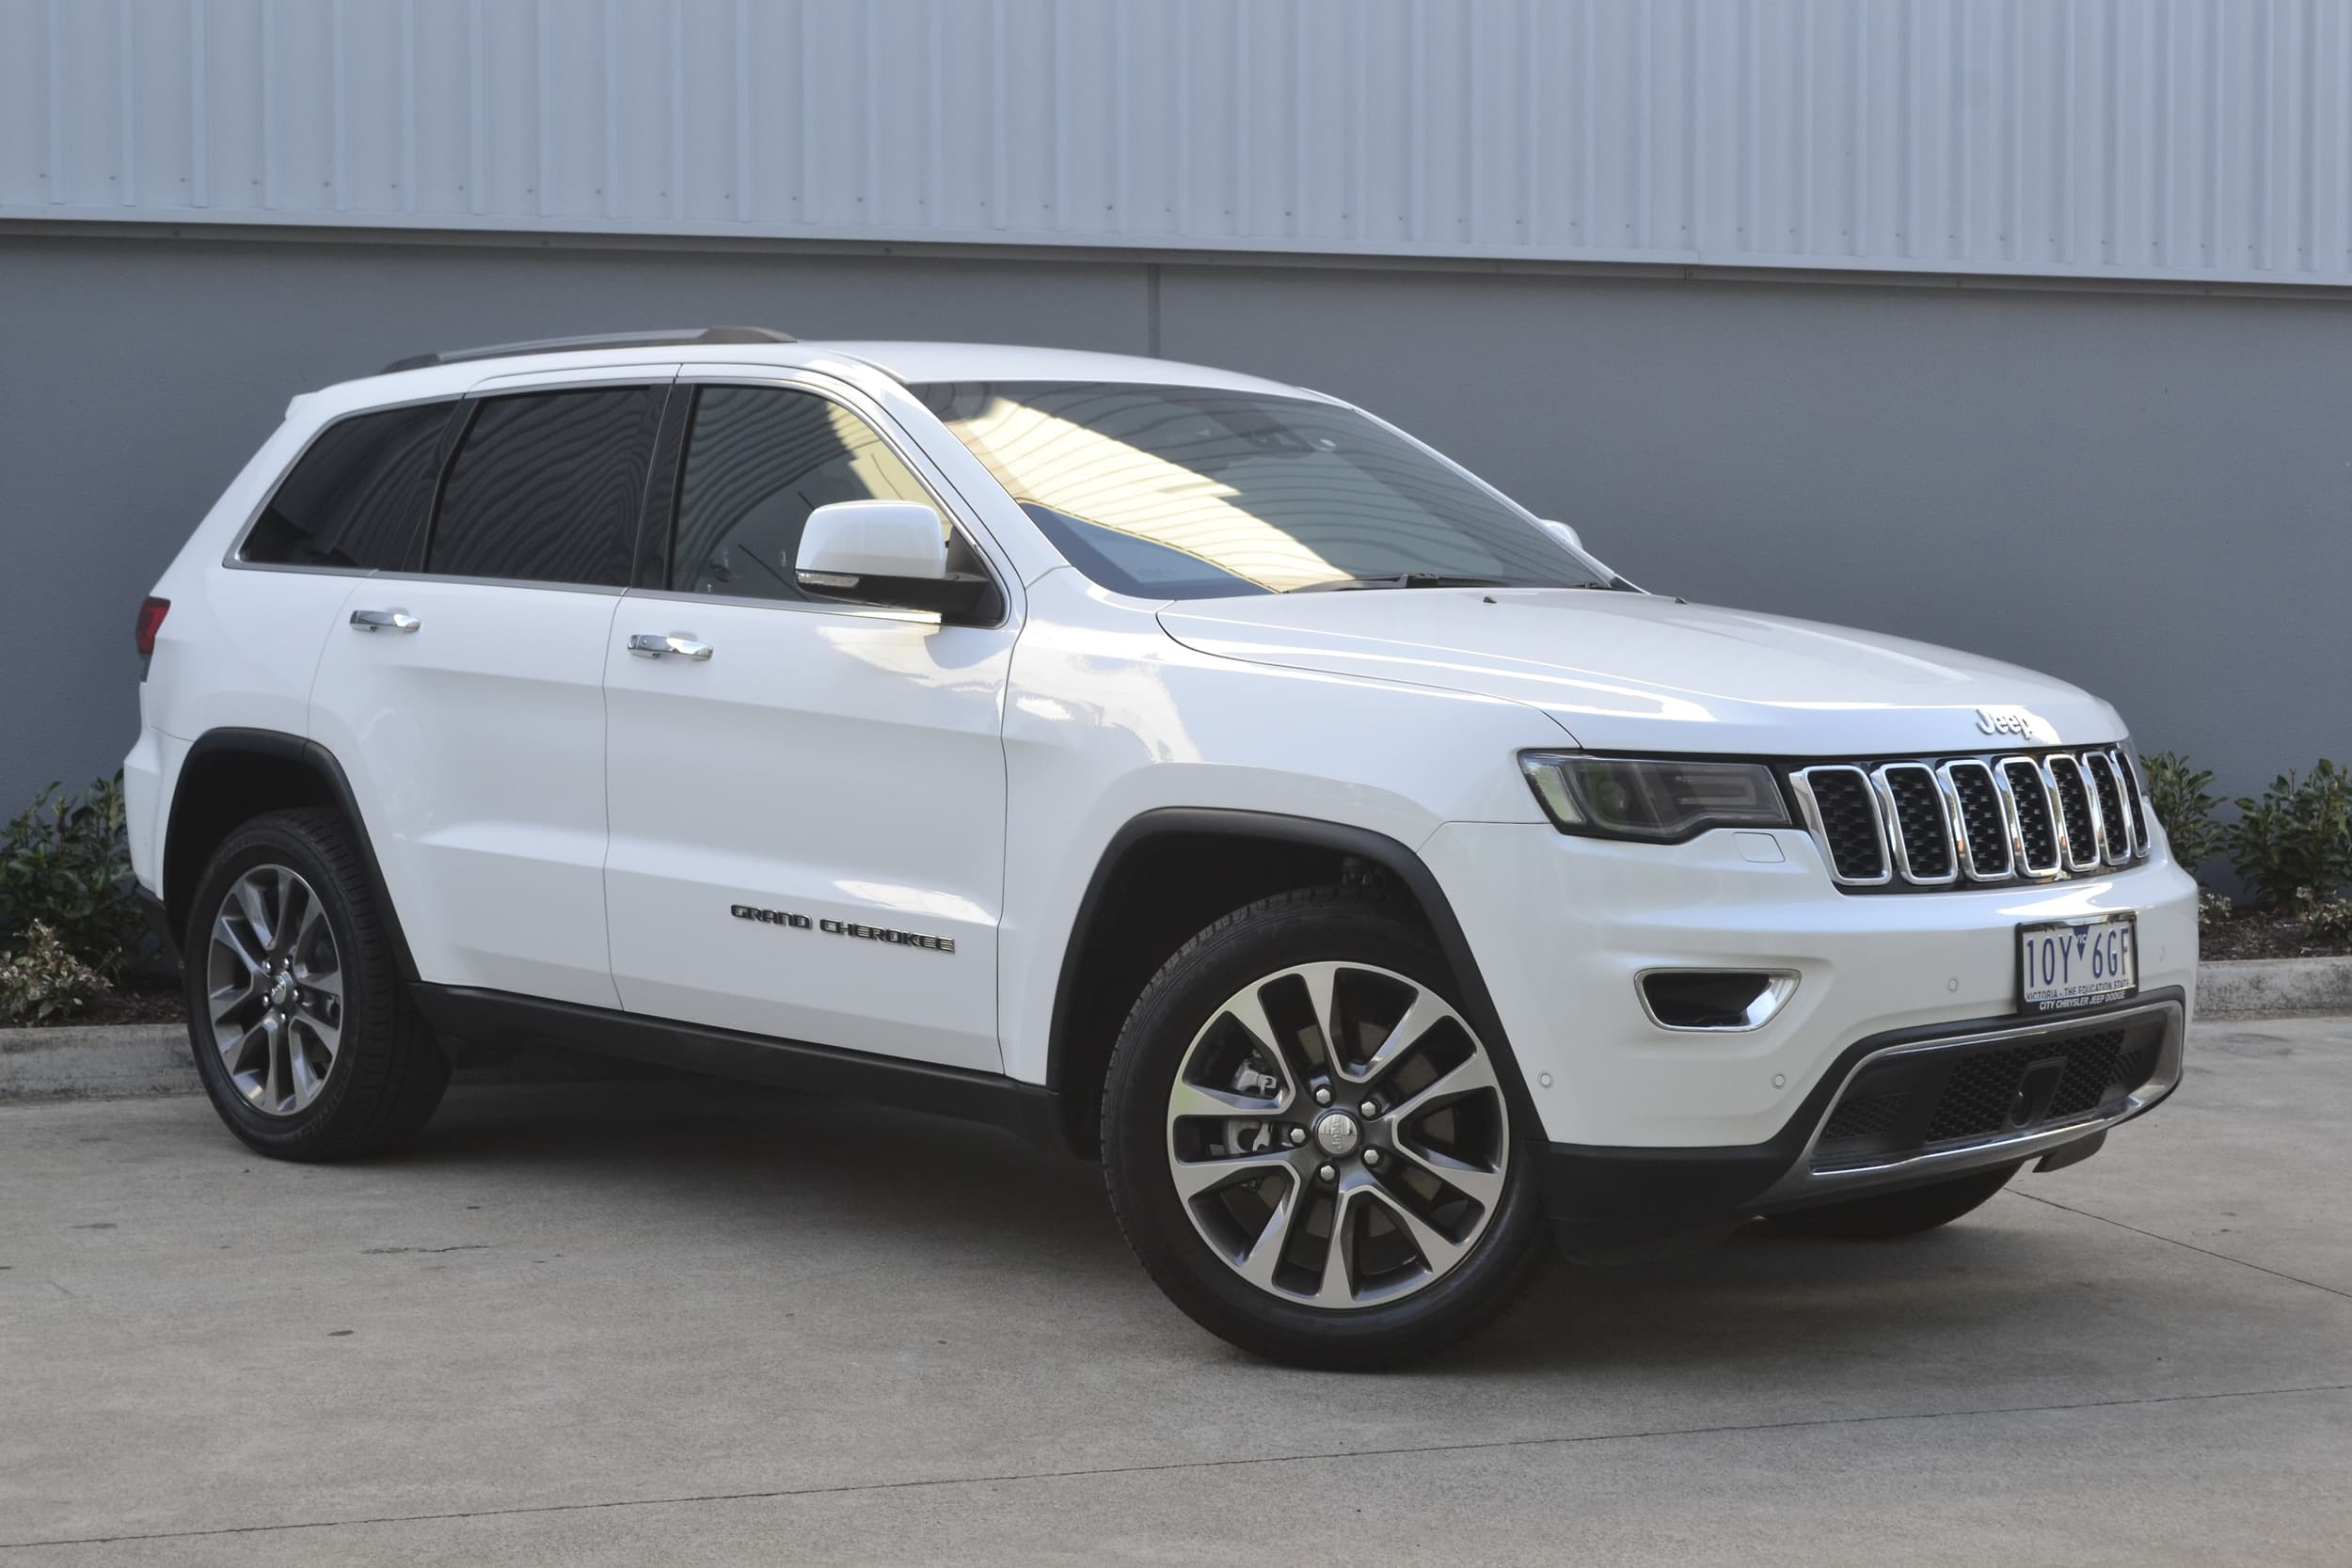 2019 Jeep Grand Cherokee Limited Auto 4x4 MY19 - image 14